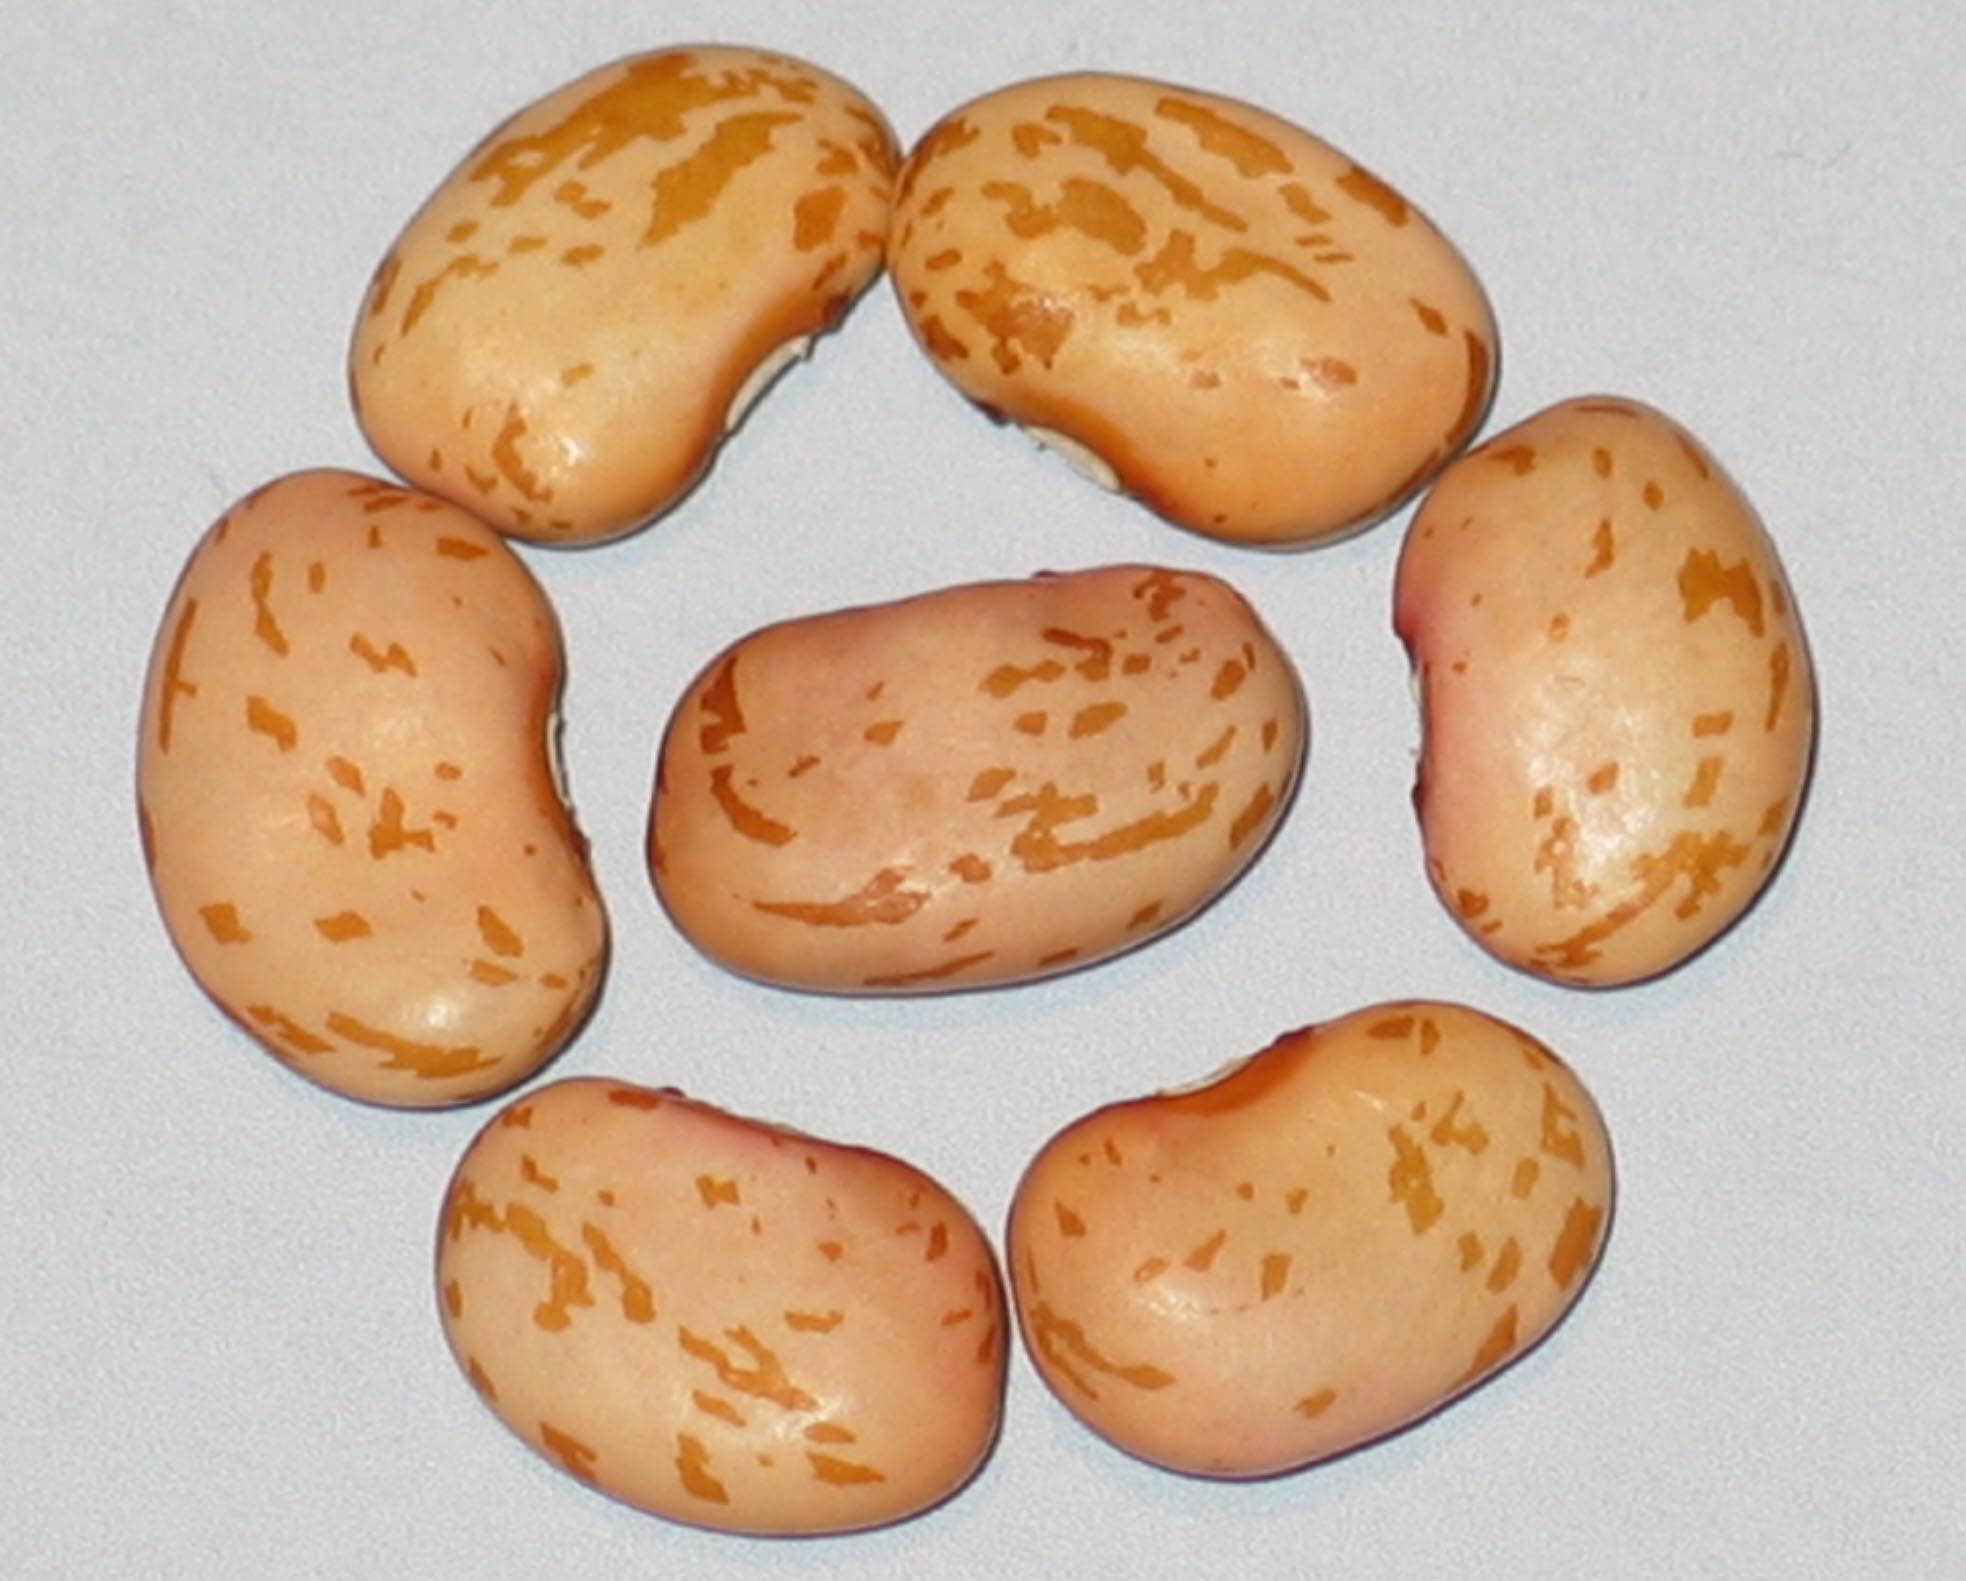 image of Golden Lima beans